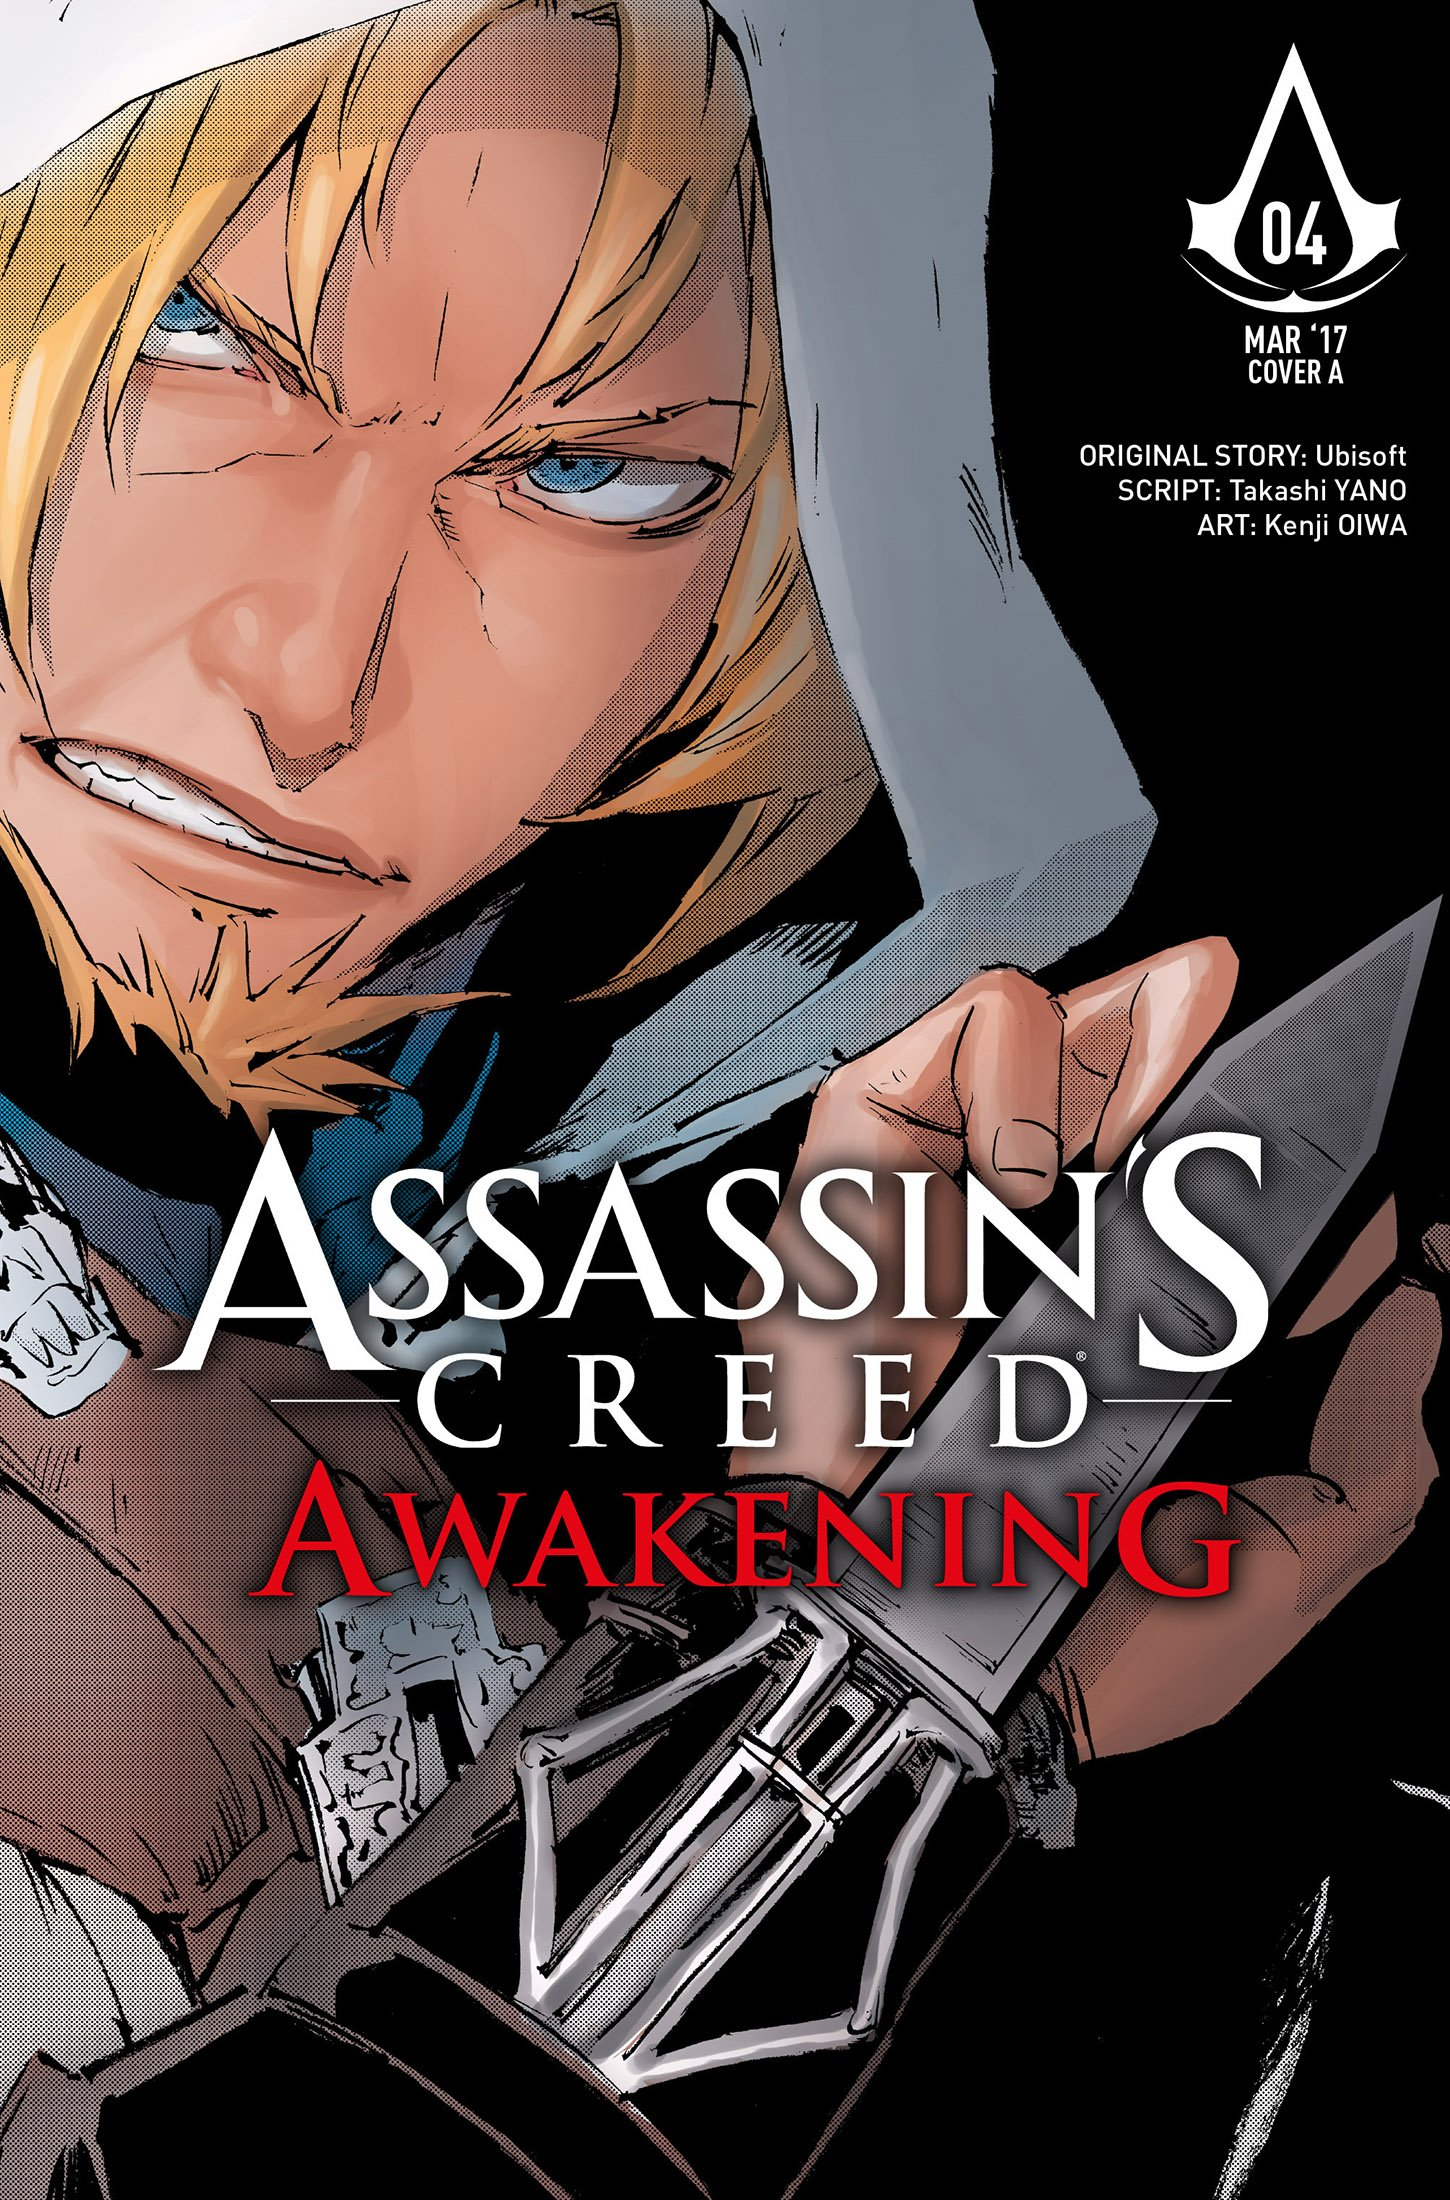 Assassin's Creed - Awakening 04 (March 2017) (cover a)